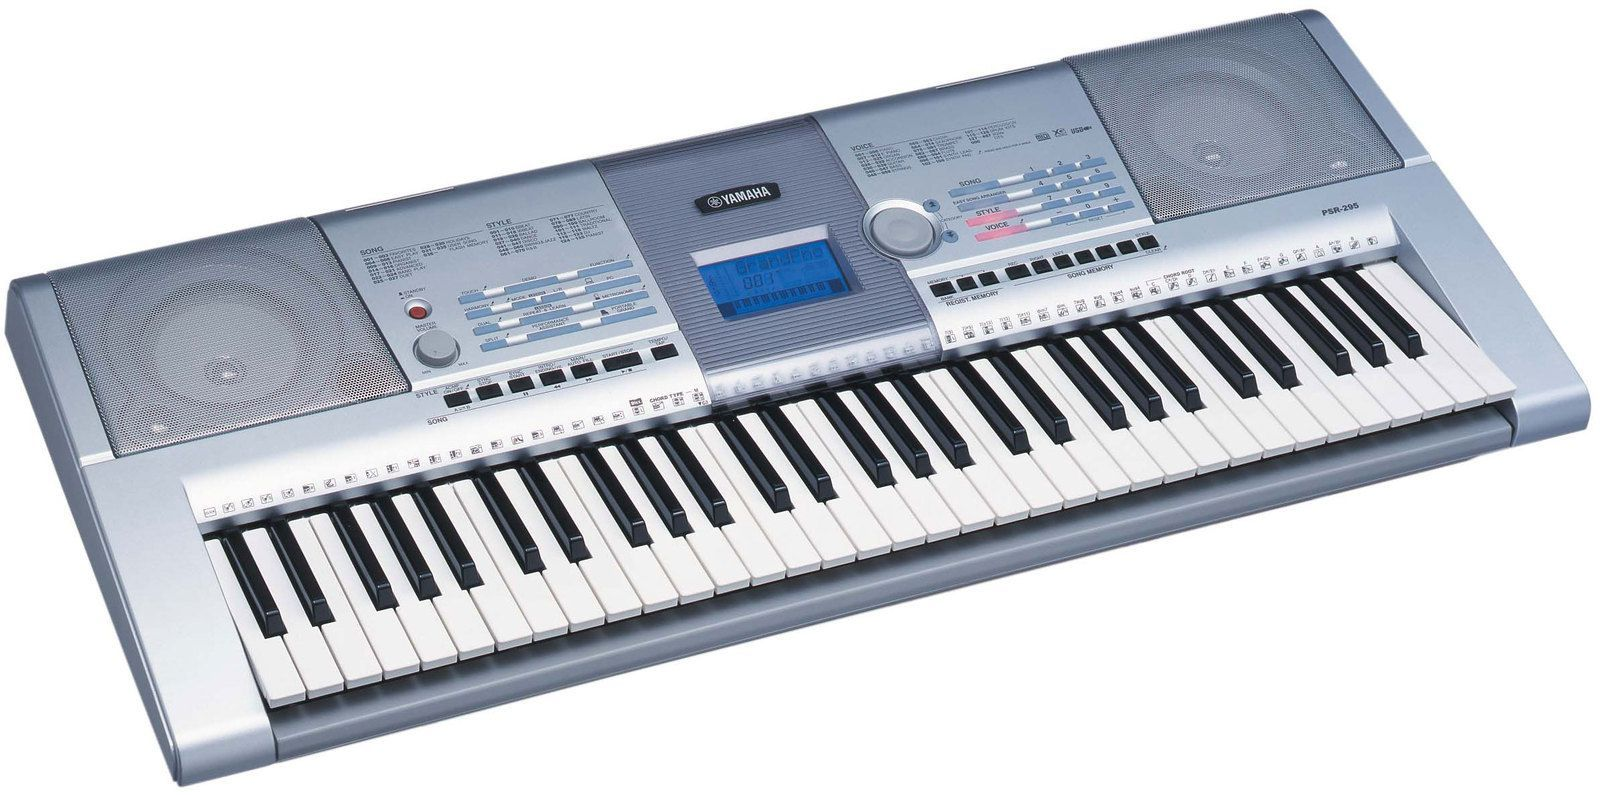 Yamaha psr 295 image 189799 audiofanzine for Yamaha professional keyboard price